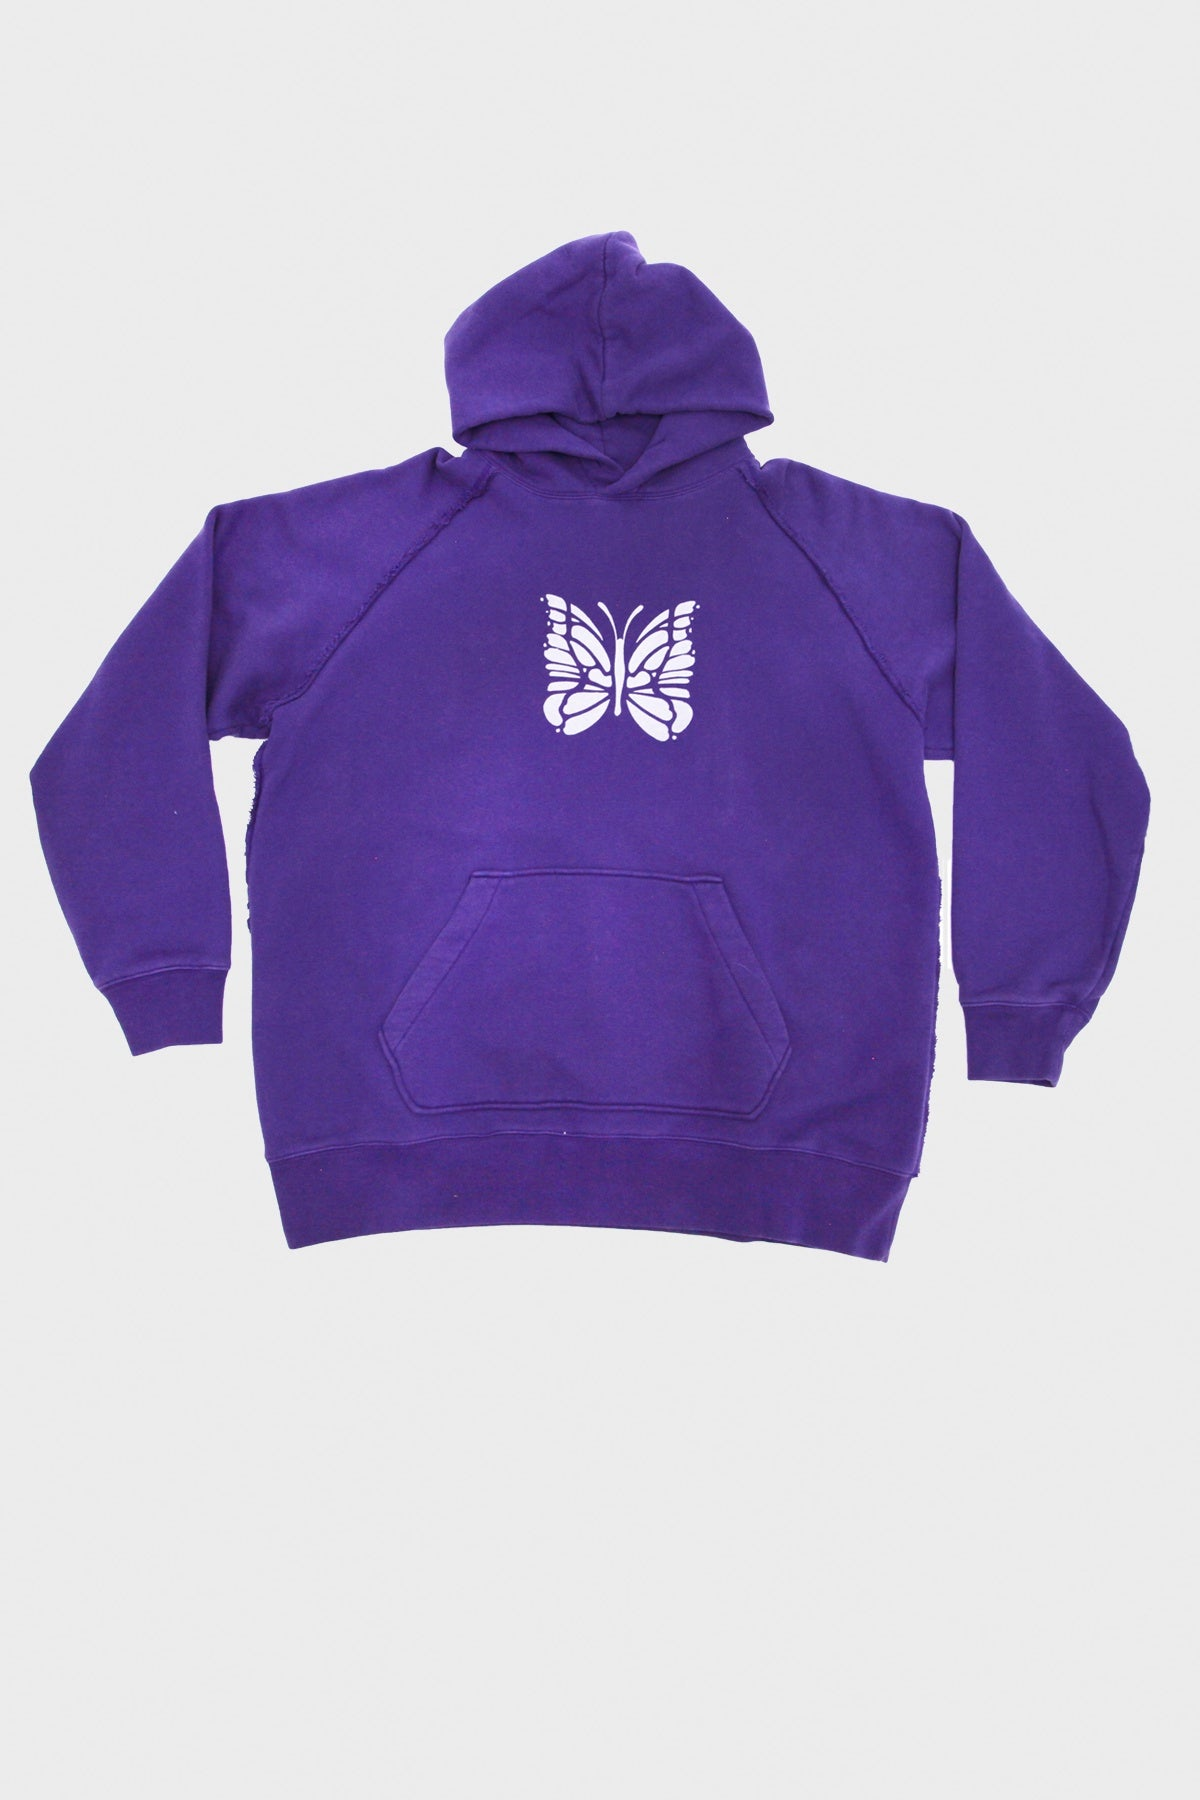 Needles - Sweat Hoody - Purple - Canoe Club